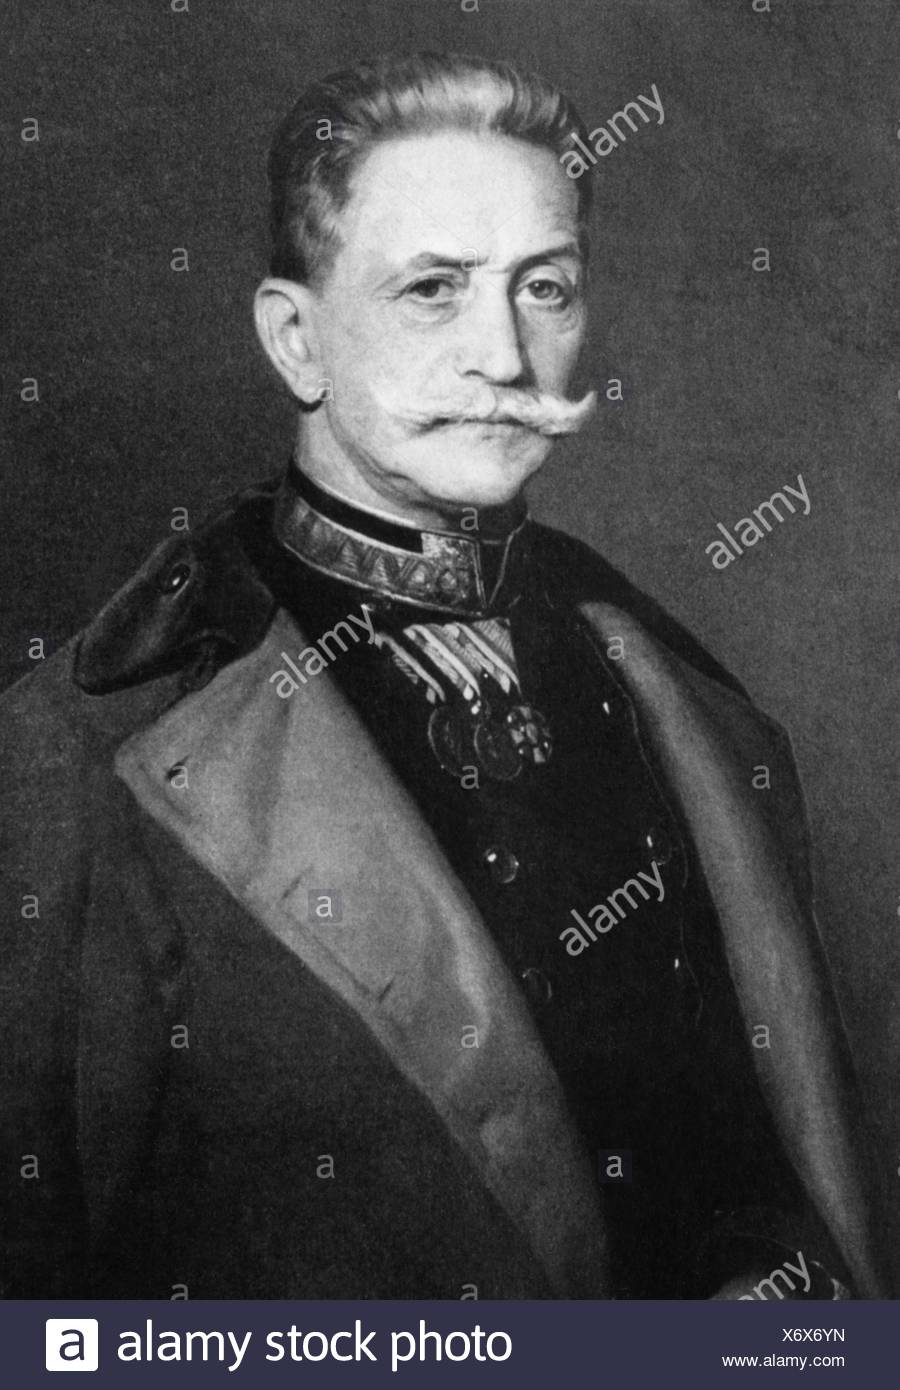 Conrad von Hoetzendorf, Count, 11.11.1852 - 25.8.1925, Austrian field marshal, chief of the general staff of the Austro-Hungarian army, half length, Additional-Rights-Clearances-NA - Stock Image